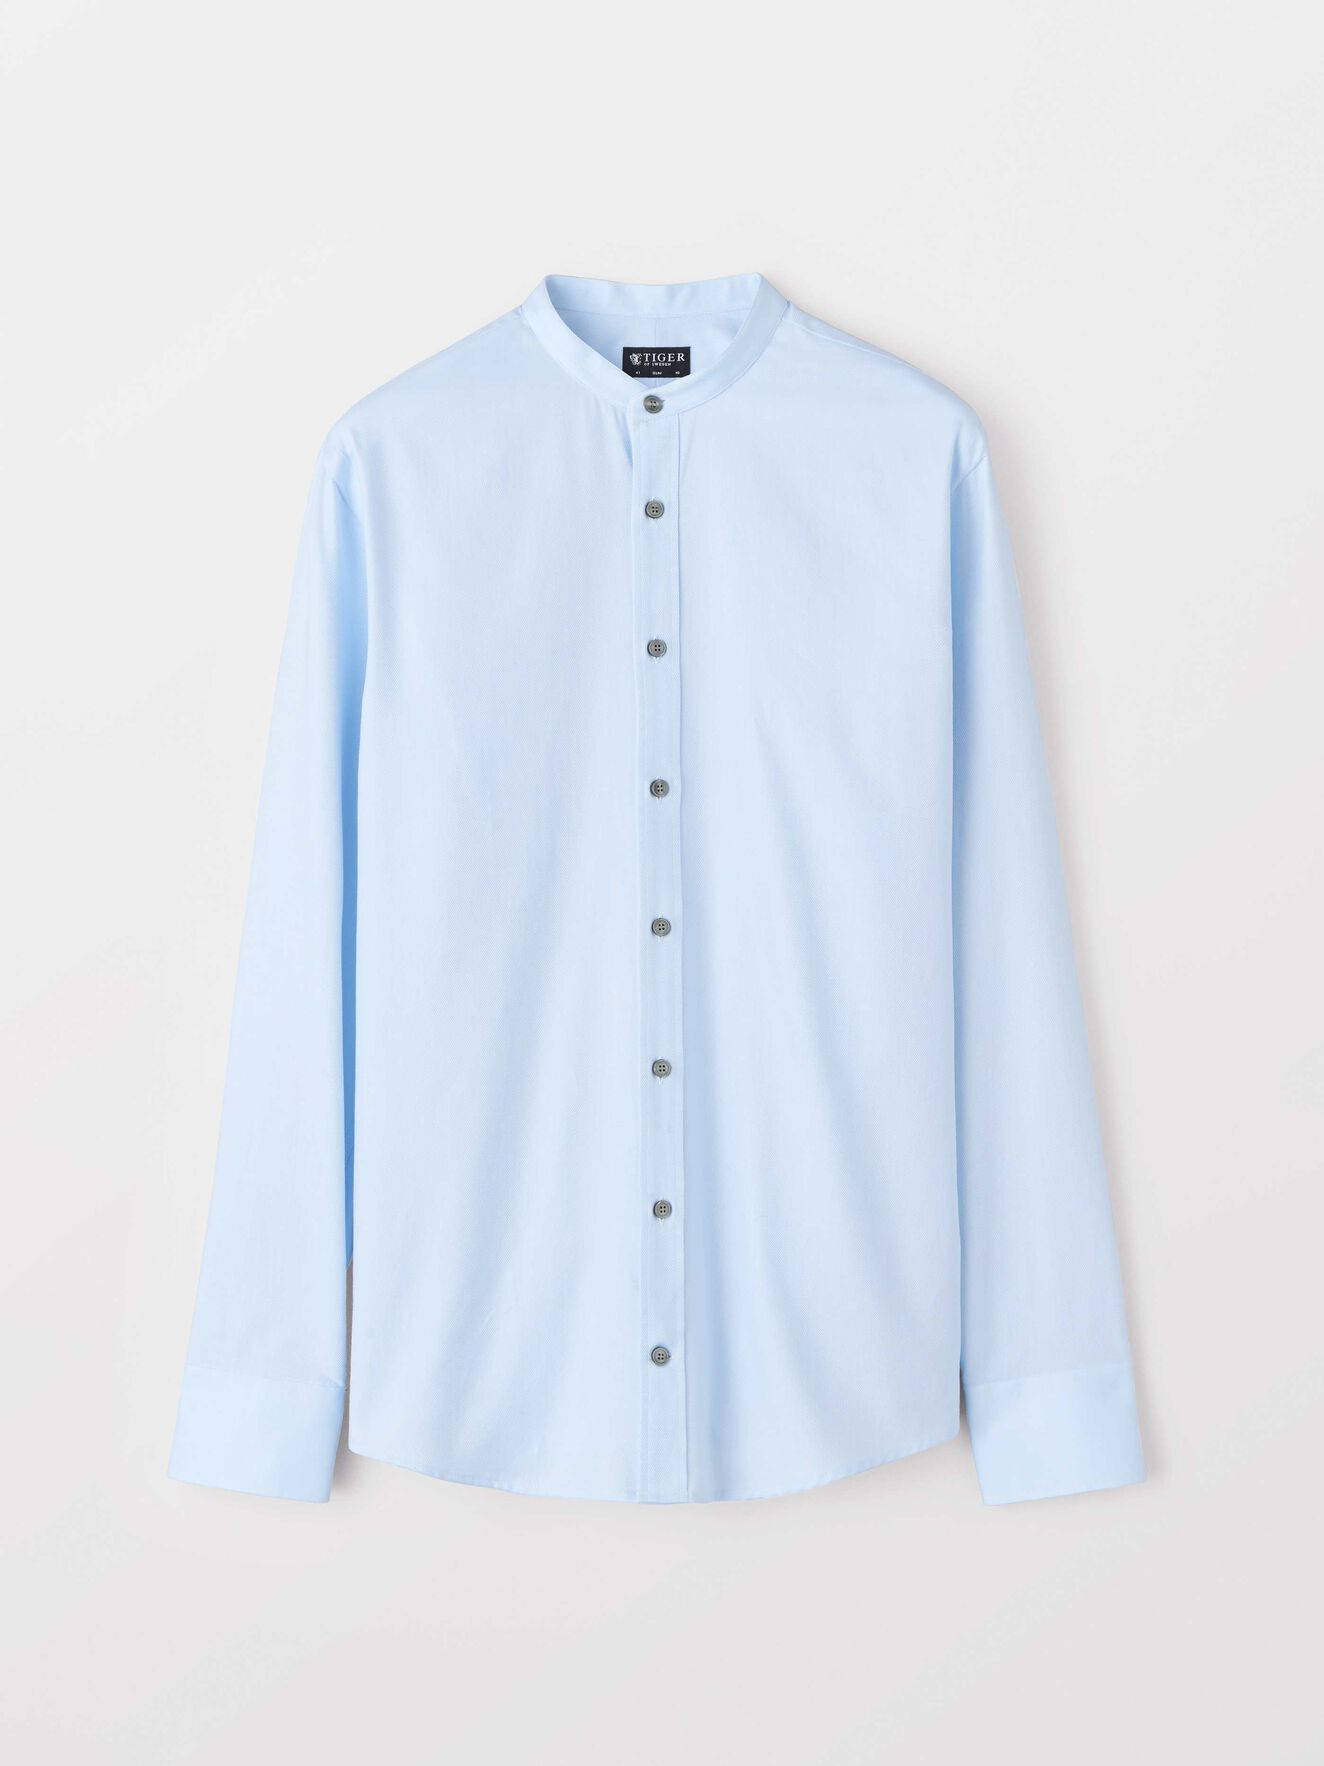 Ferante Shirt in Silver Blue from Tiger of Sweden